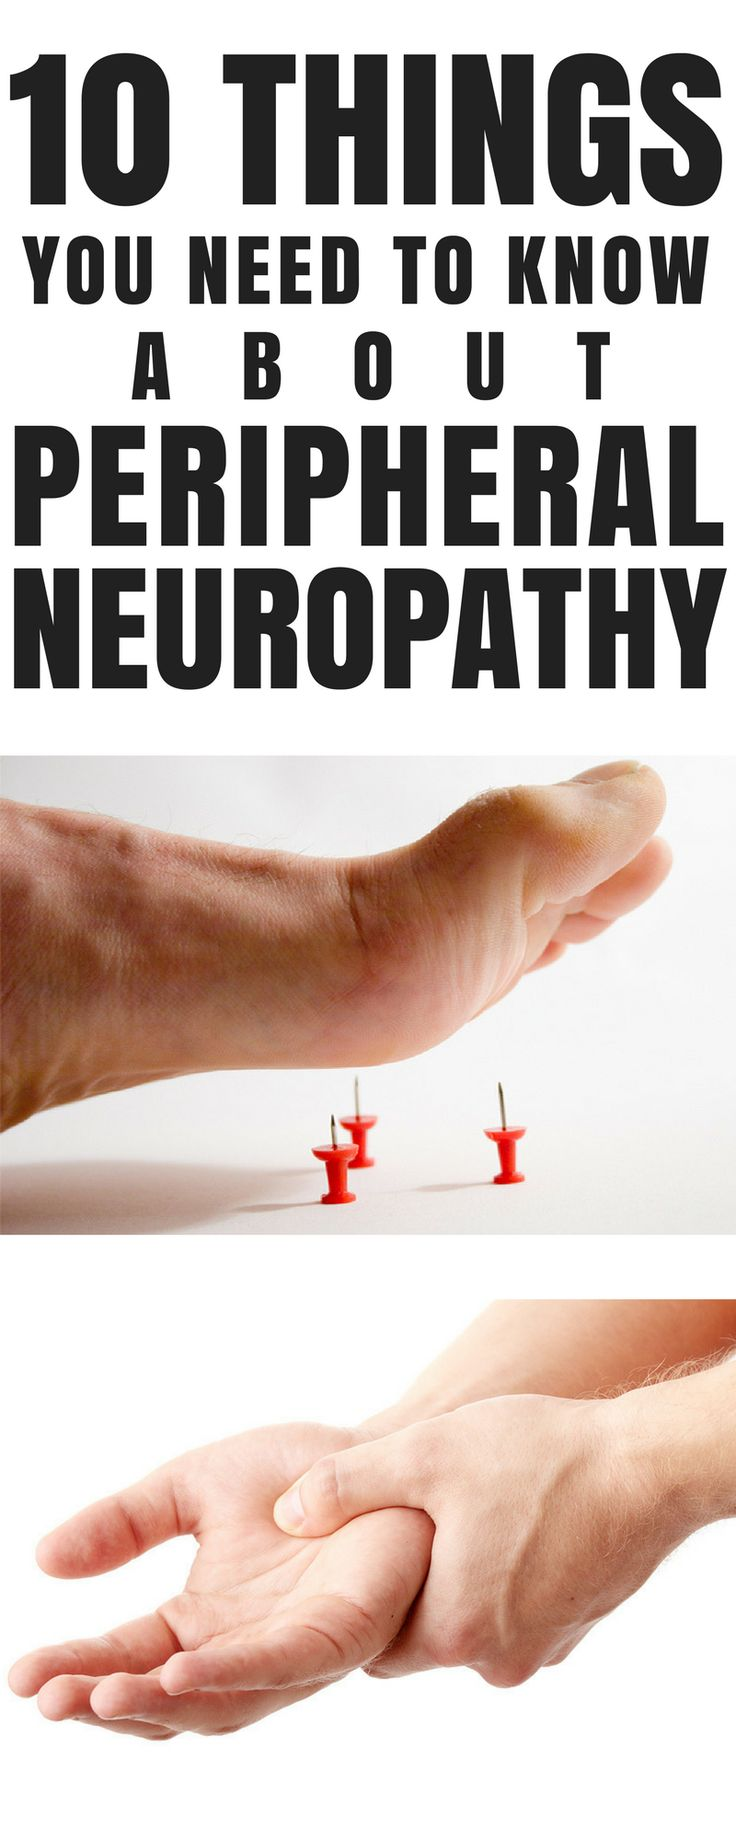 treatments for painful neuropathy Treatment of painful sensory neuropathy presents enormous challenges and is currently inadequate the evaluation of patients with this condition does not necessarily require a neurologist, but it does require clinicians experienced with electromyography and autonomic nervous system testing education of the patient is critical in order to.